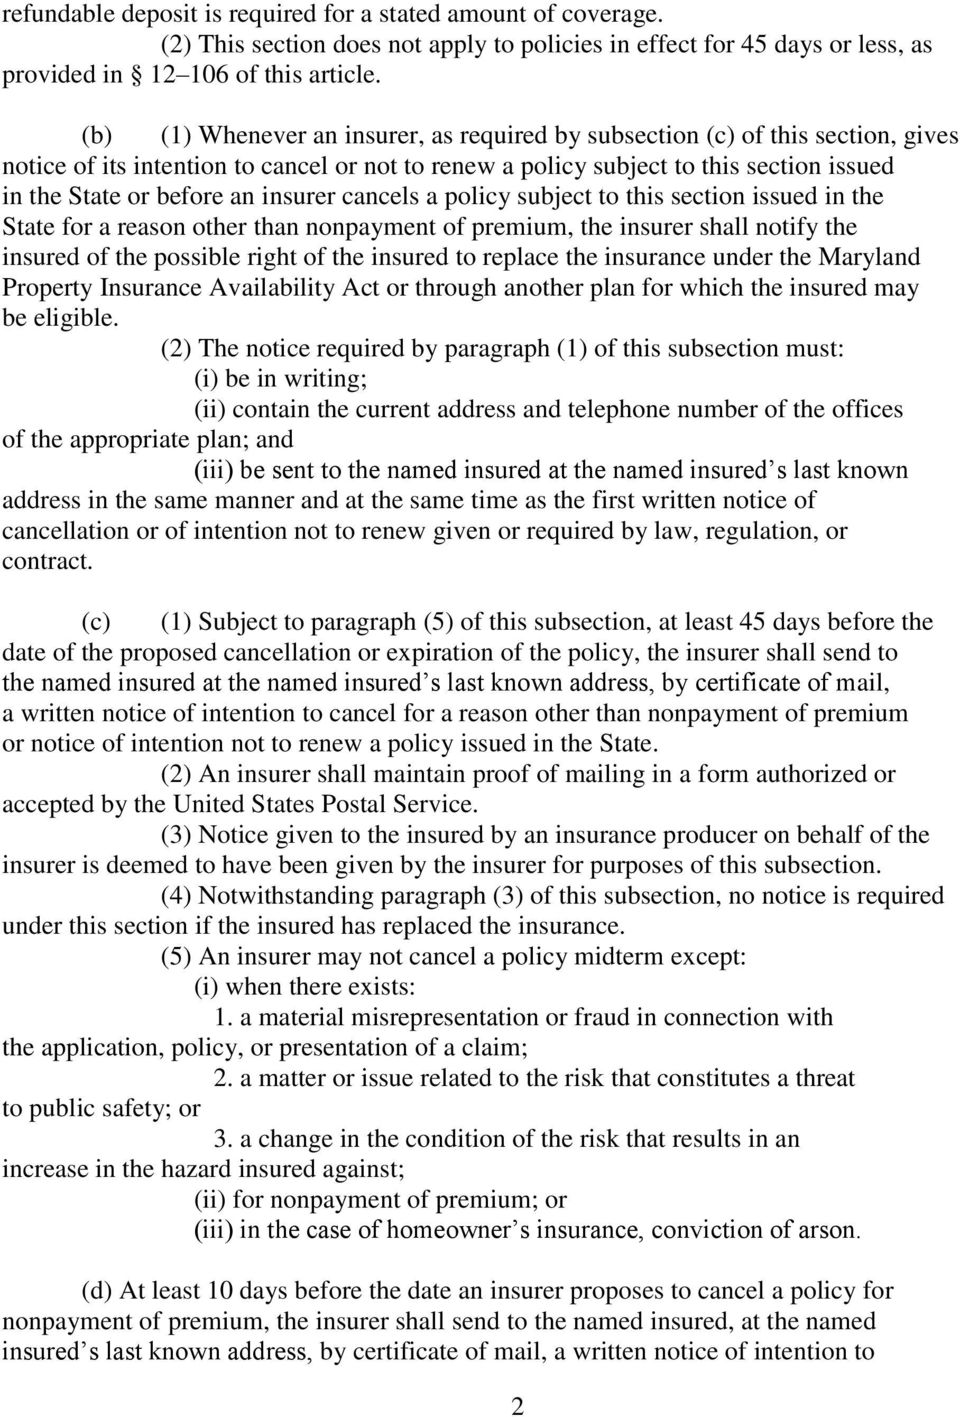 MARYLAND LAWS AND REGULATIONS ON NON-RENEWAL/CANCELLATION OF